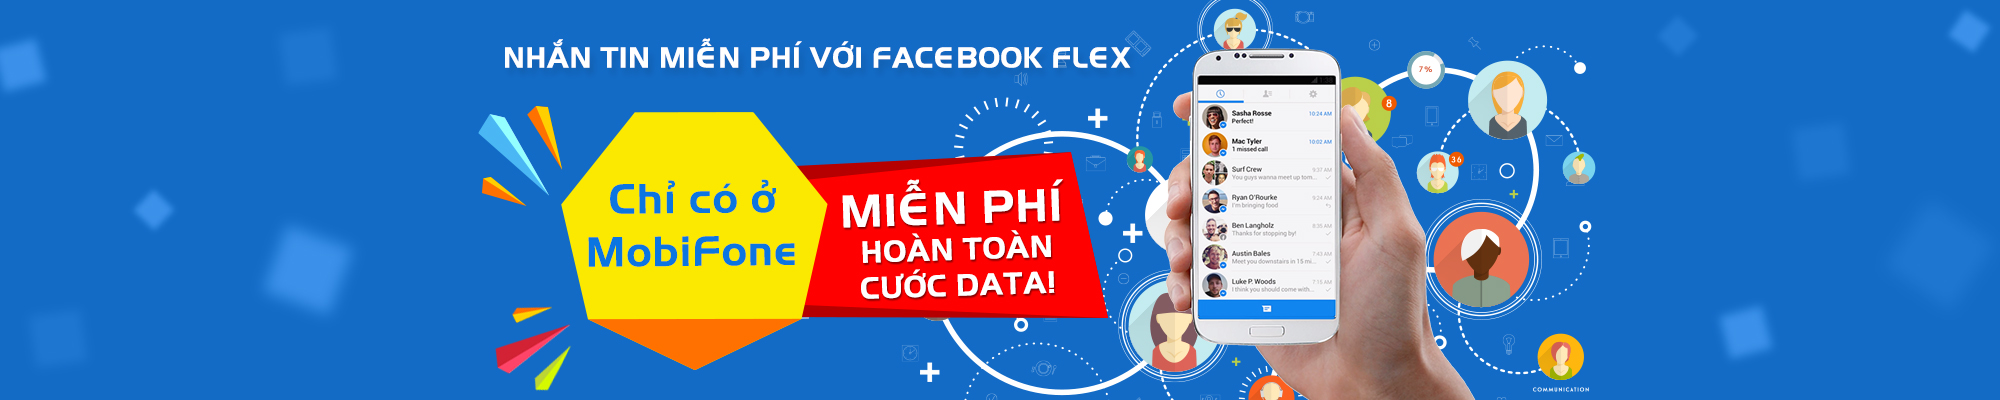 facebook flex mobifone